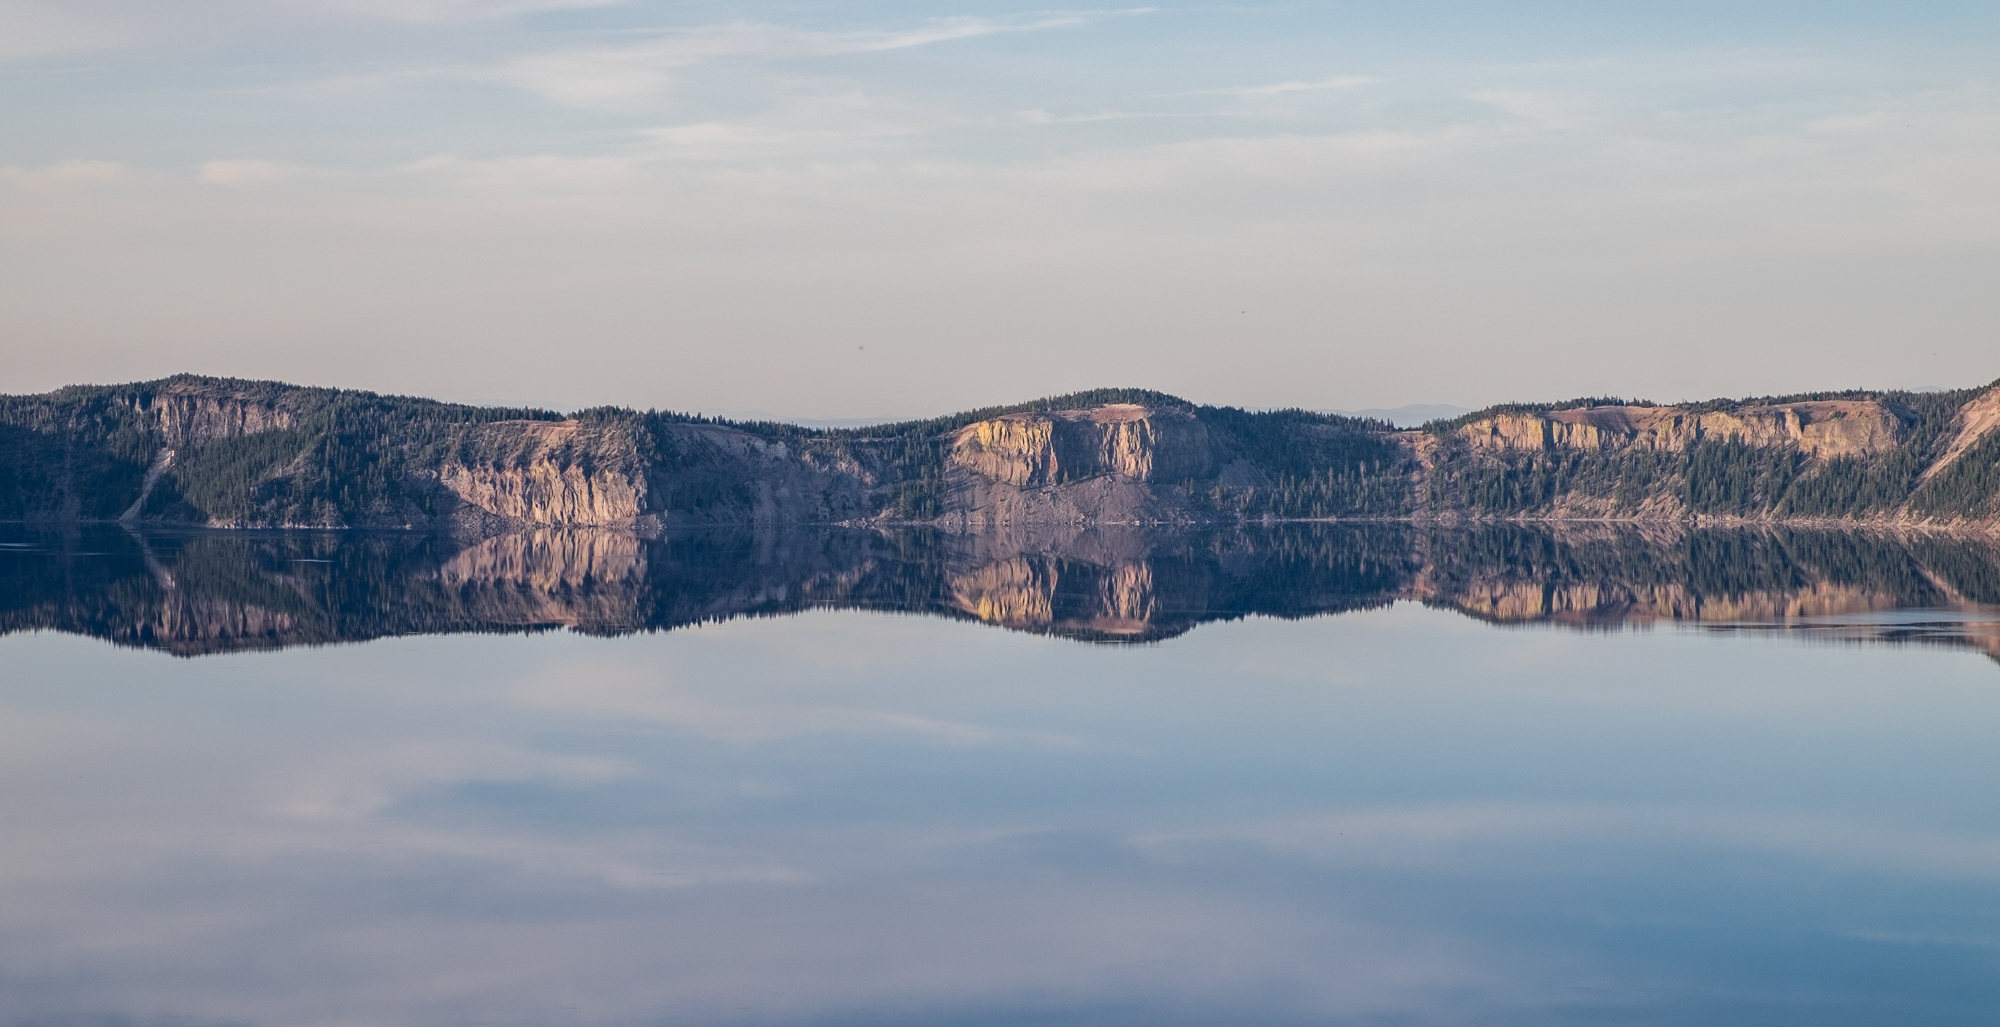 Nature's Rorschach test -- reflection perfection at the deepest lake in the United States.